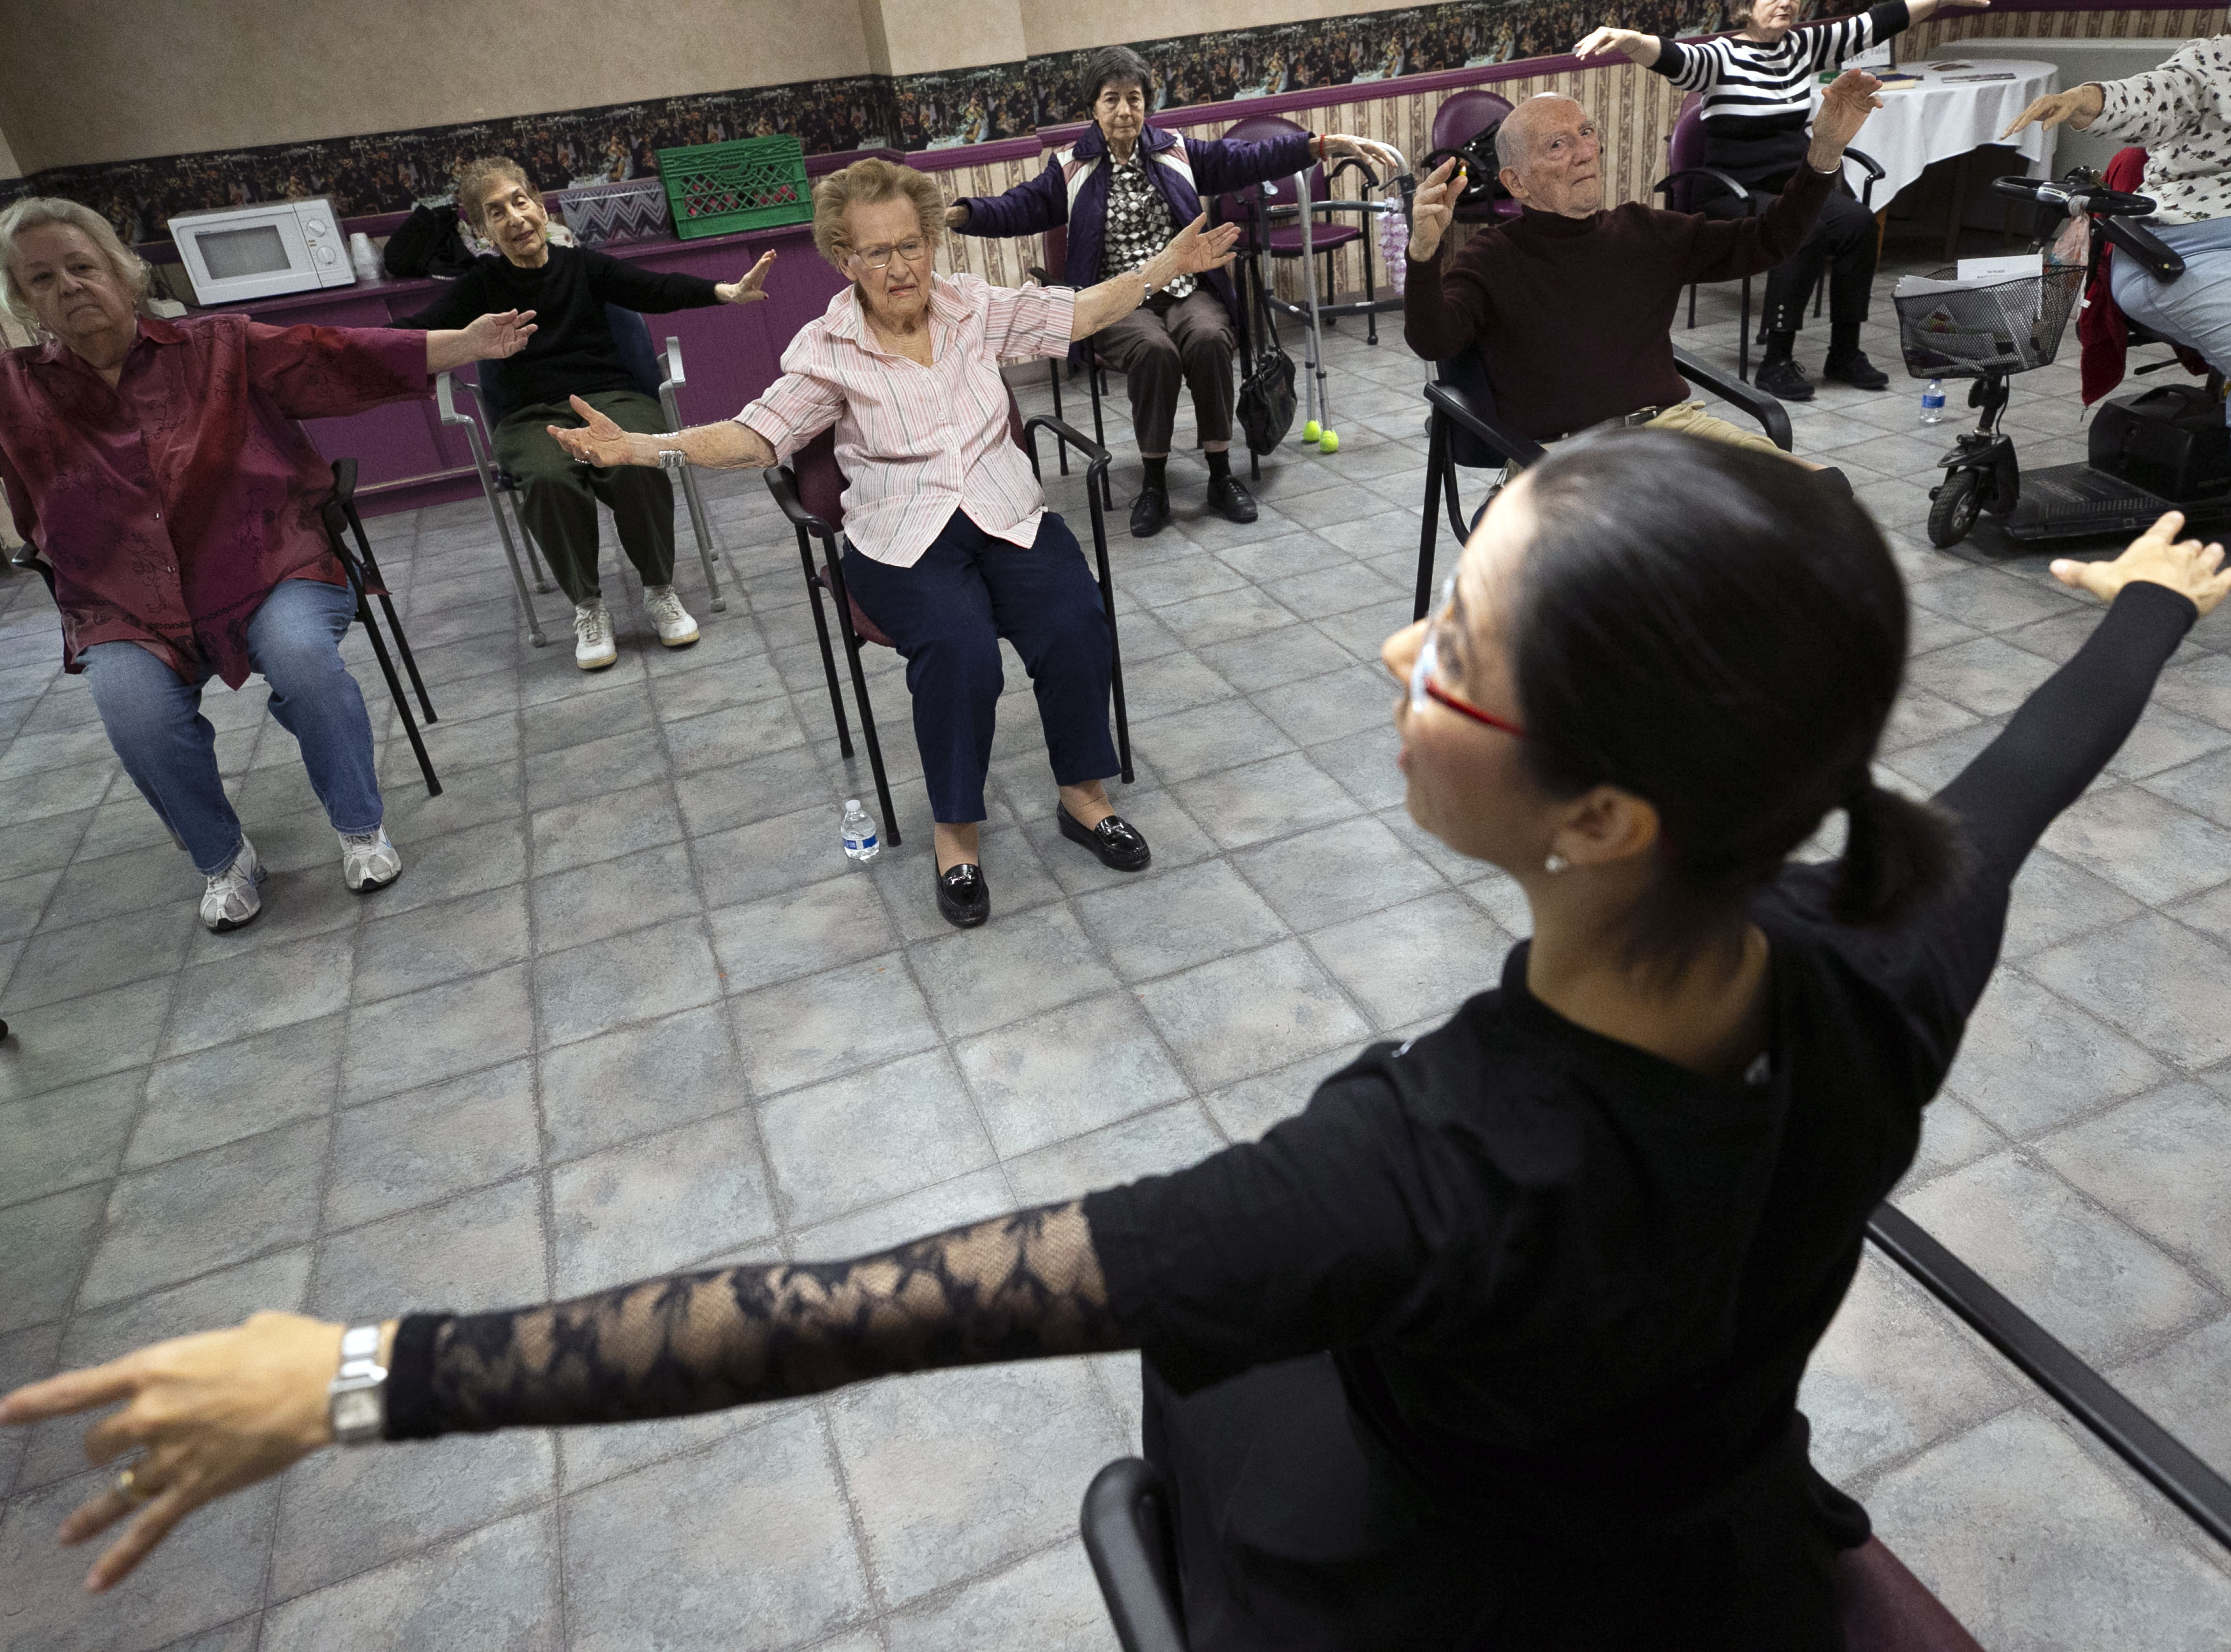 Fabiola Ambrosio, a faculty member with Ballet Arizona, leads a ballet class with Betty Benyes (top center), 100, and other participants during Ballet Arizona's Creative Aging class at the Jewish Family & Children's Service Center for Senior Enrichment in the Palazzo Assisted Living Facility in Phoenix on Nov. 27, 2018.